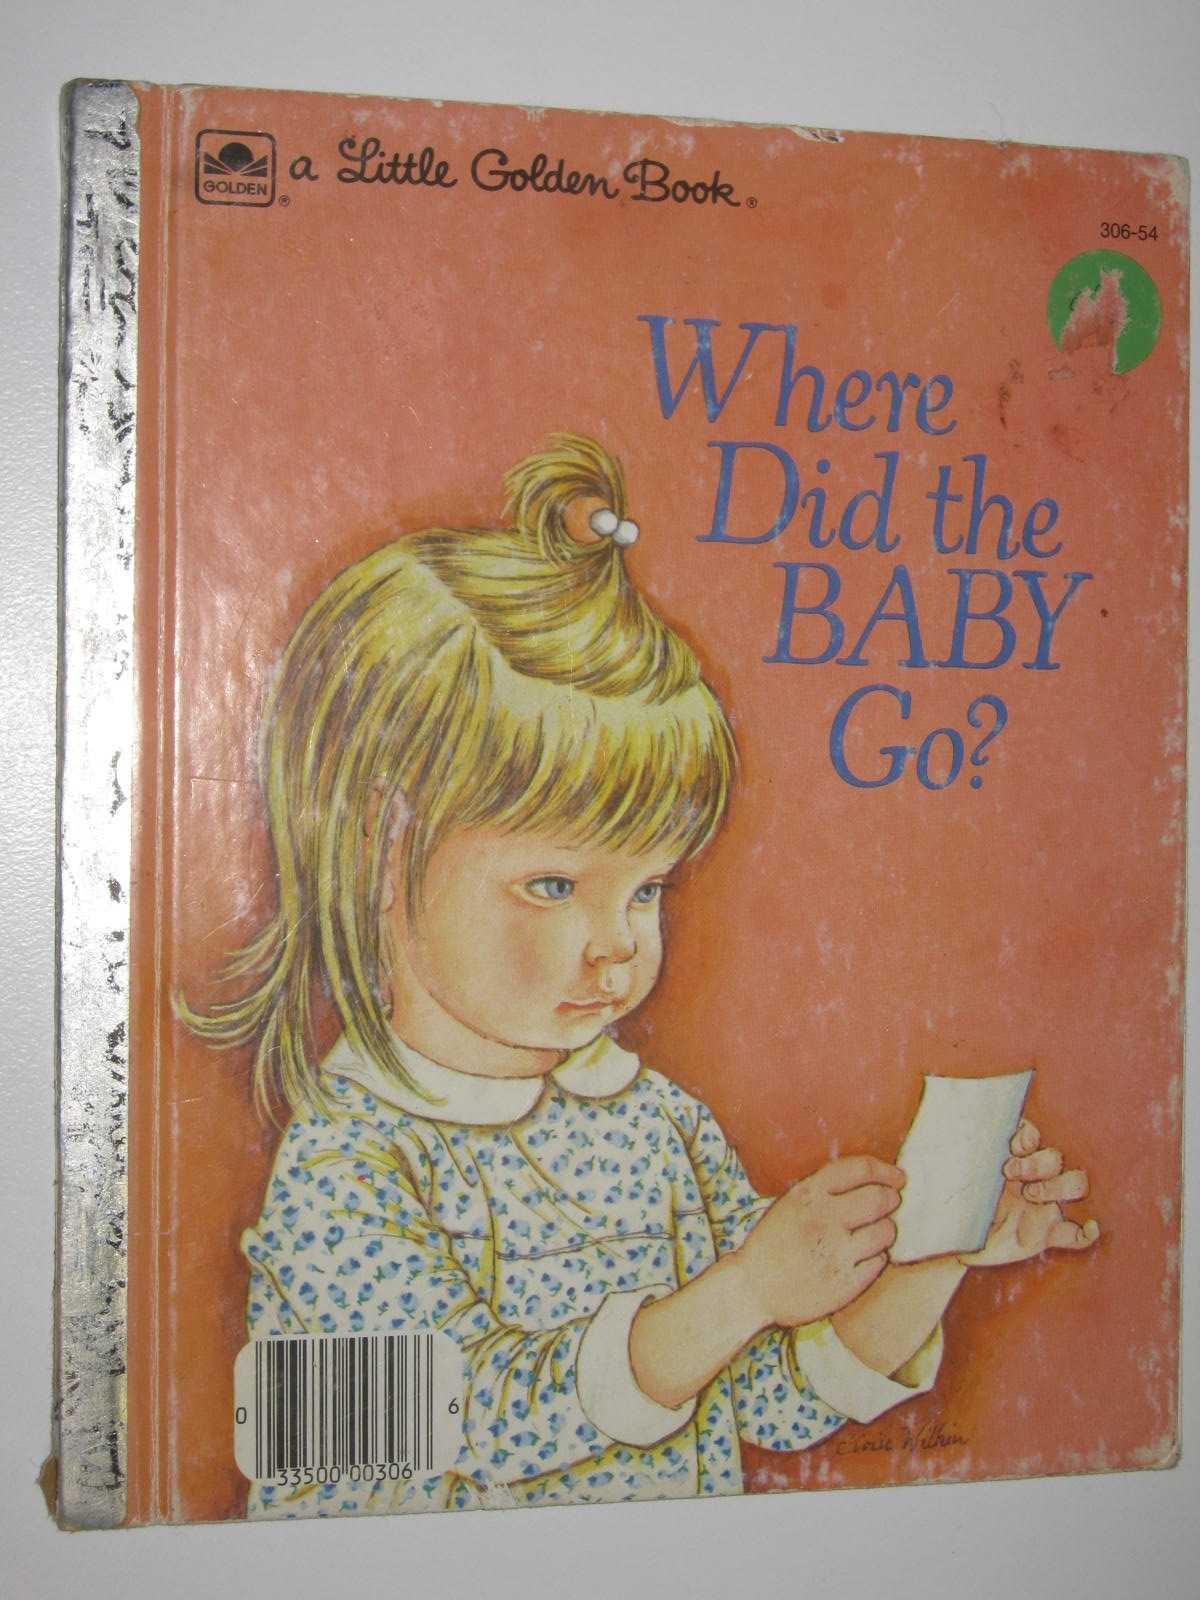 Image for Where Did The Baby Go - Little Golden Book Series #306-54